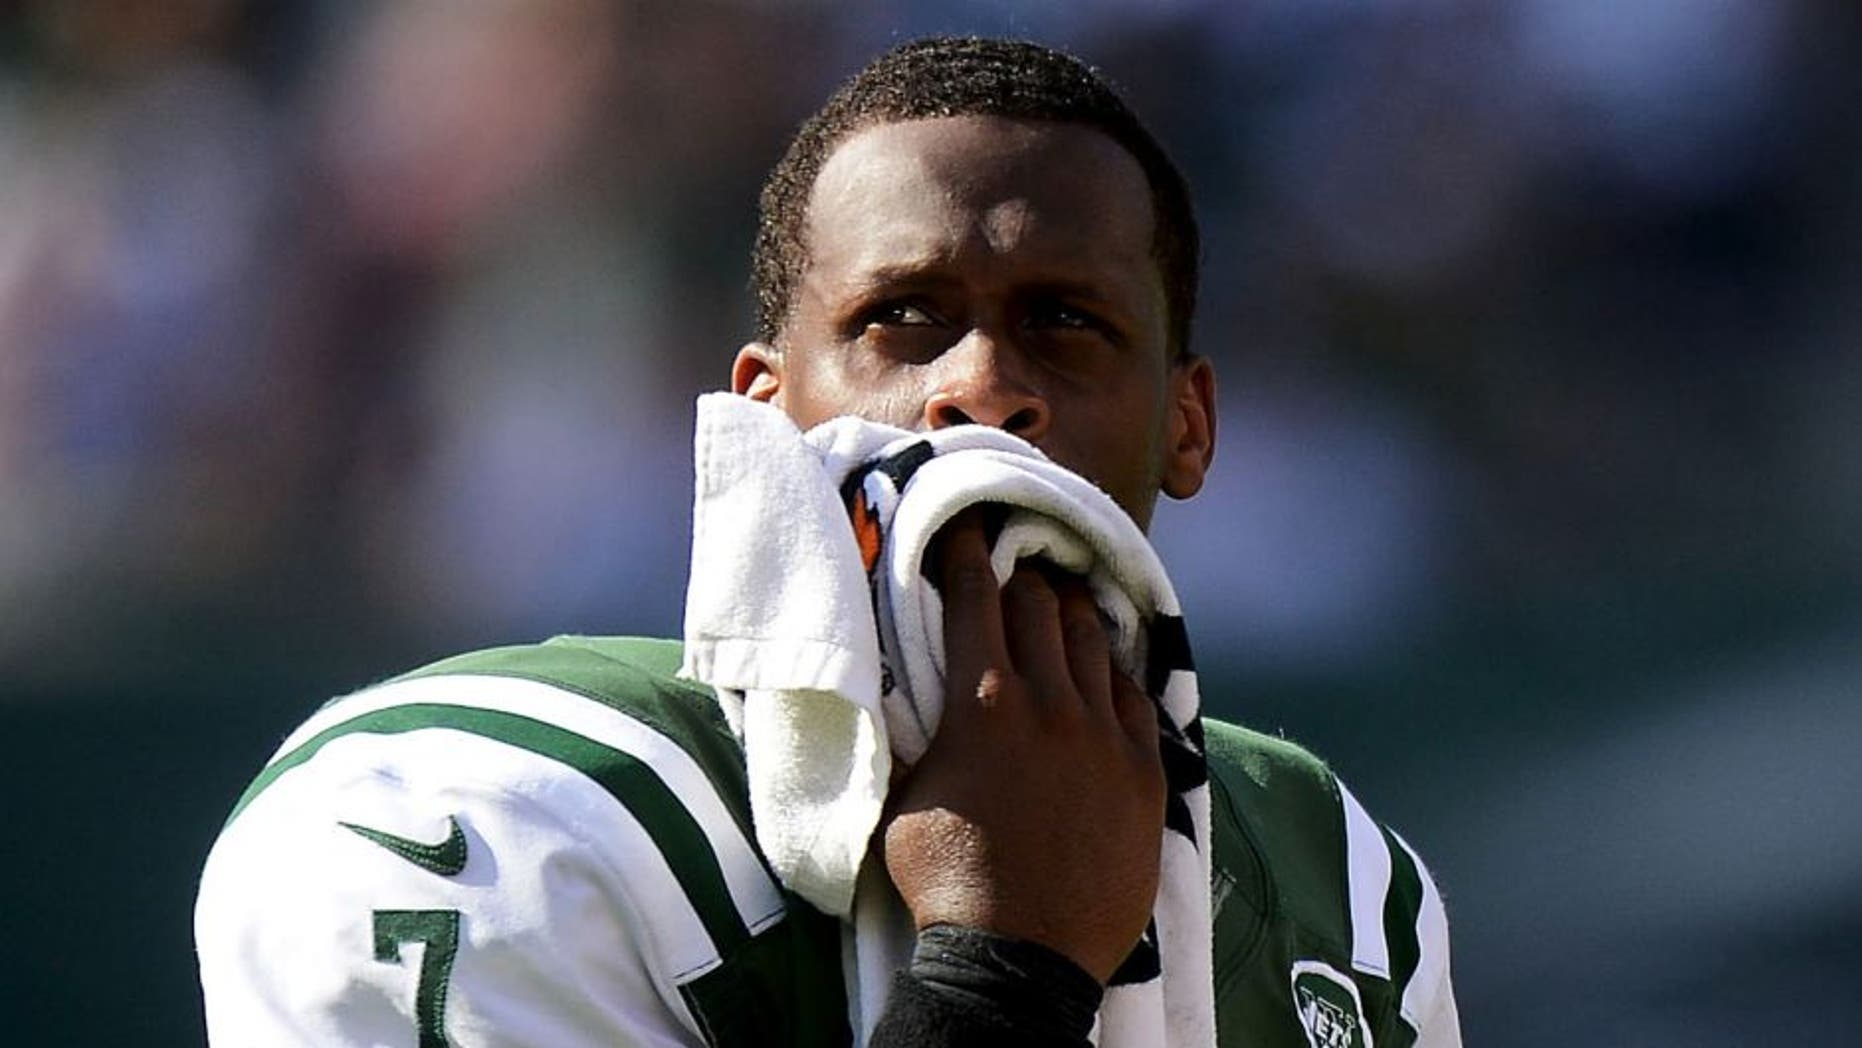 EAST RUTHERFORD, NJ - SEPTEMBER 28: Geno Smith #7 of the New York Jets looks on from the bench in the fourth quarter of their 24 to 17 loss to the Detroit Lions at MetLife Stadium on September 28, 2014 in East Rutherford, New Jersey. (Photo by Ron Antonelli/Getty Images)